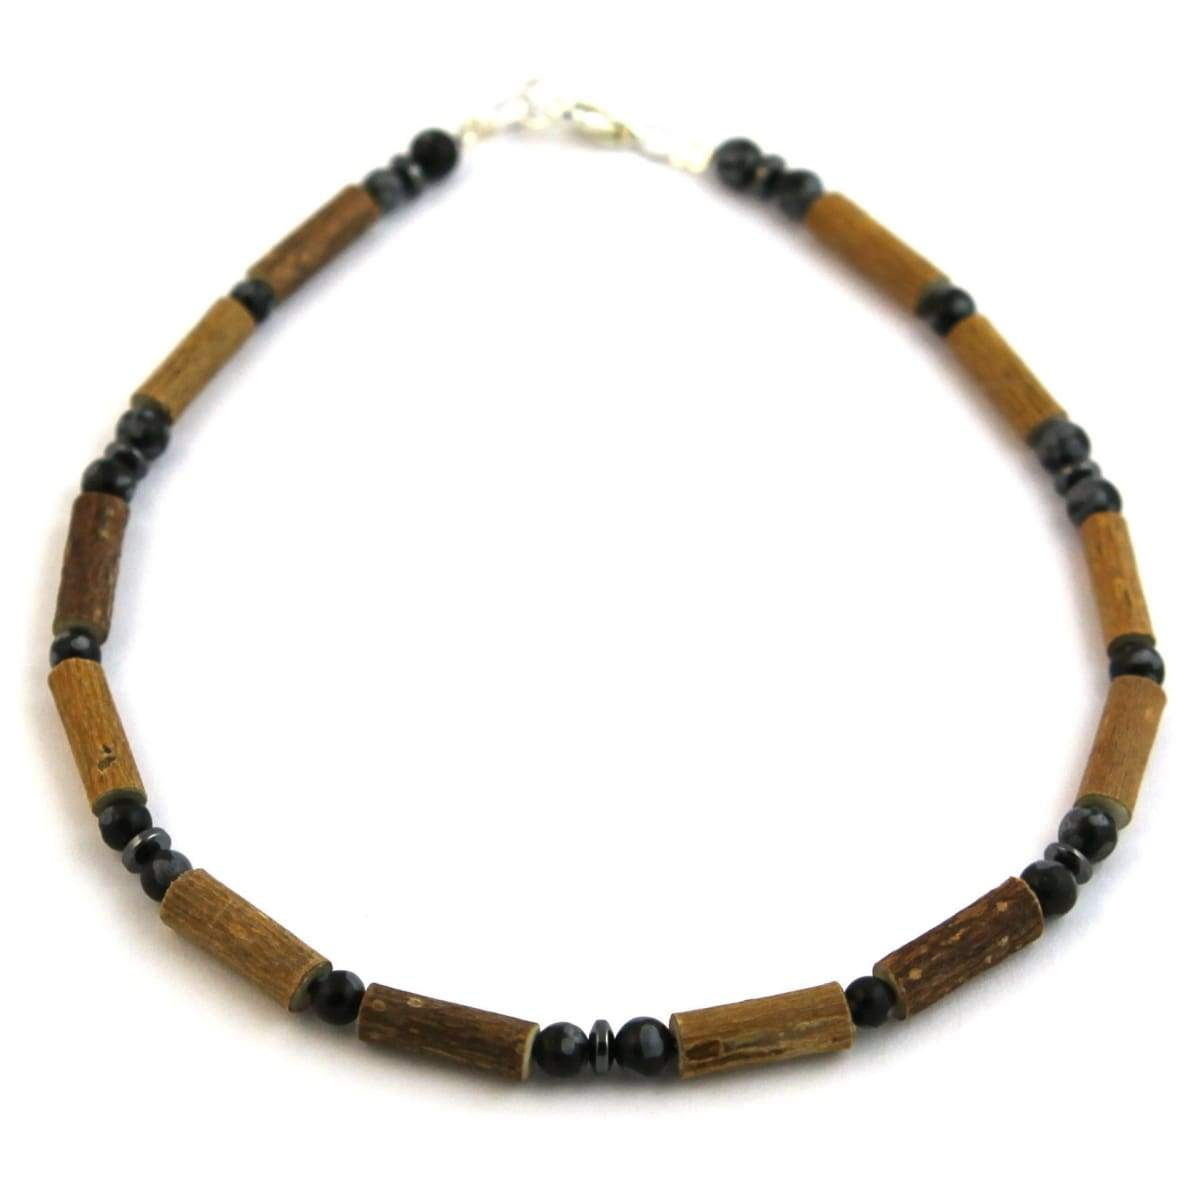 Hazel-Gemstone Black Obsidian - 11 Necklace - Lobster Claw Clasp - Hazelwood & Gemstone Jewelry